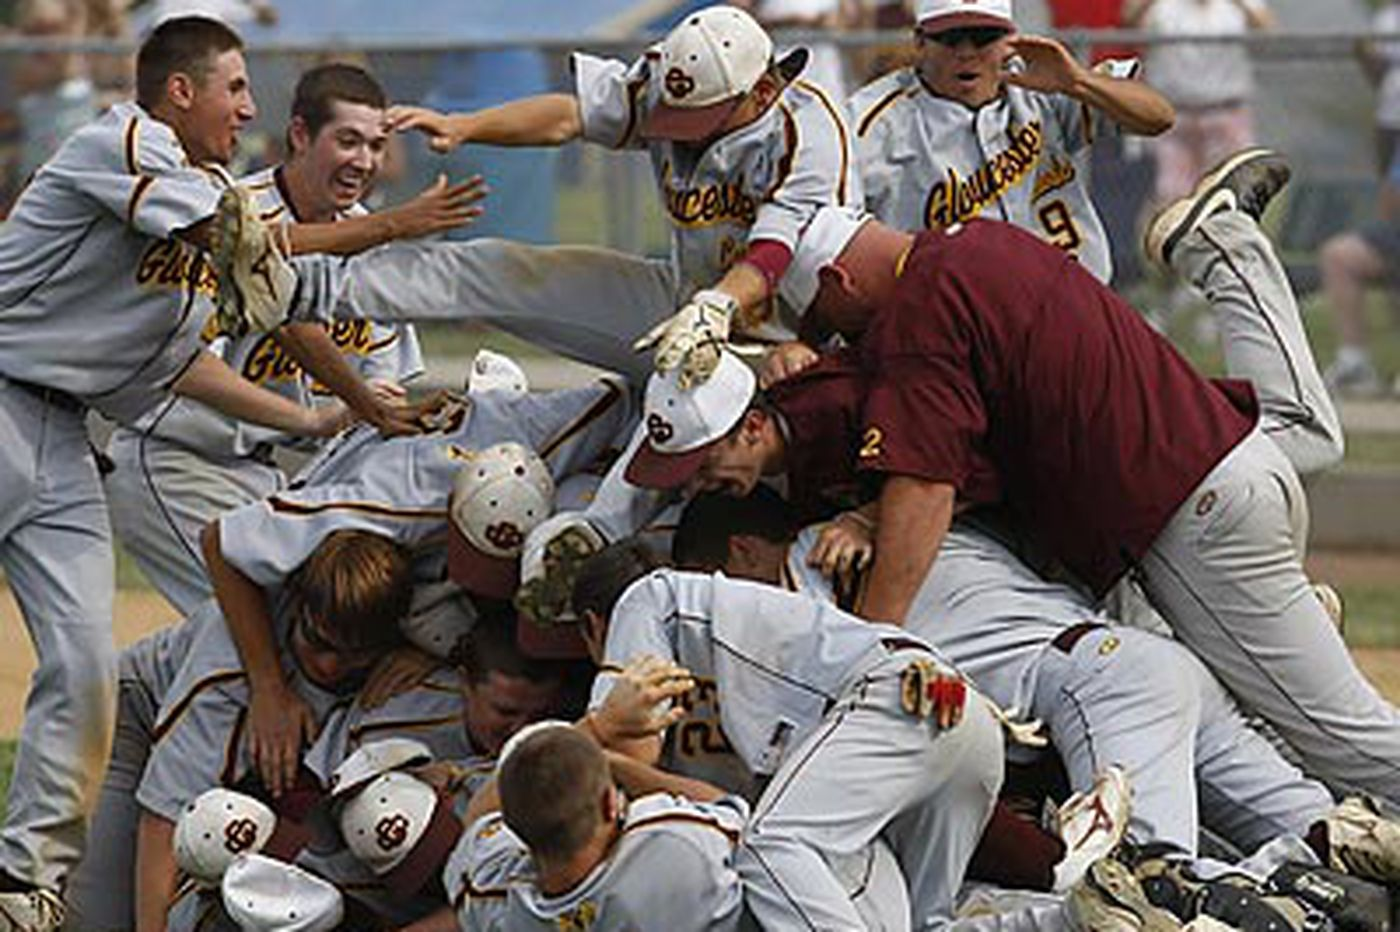 For Gloucester Catholic, youth serves baseball crown